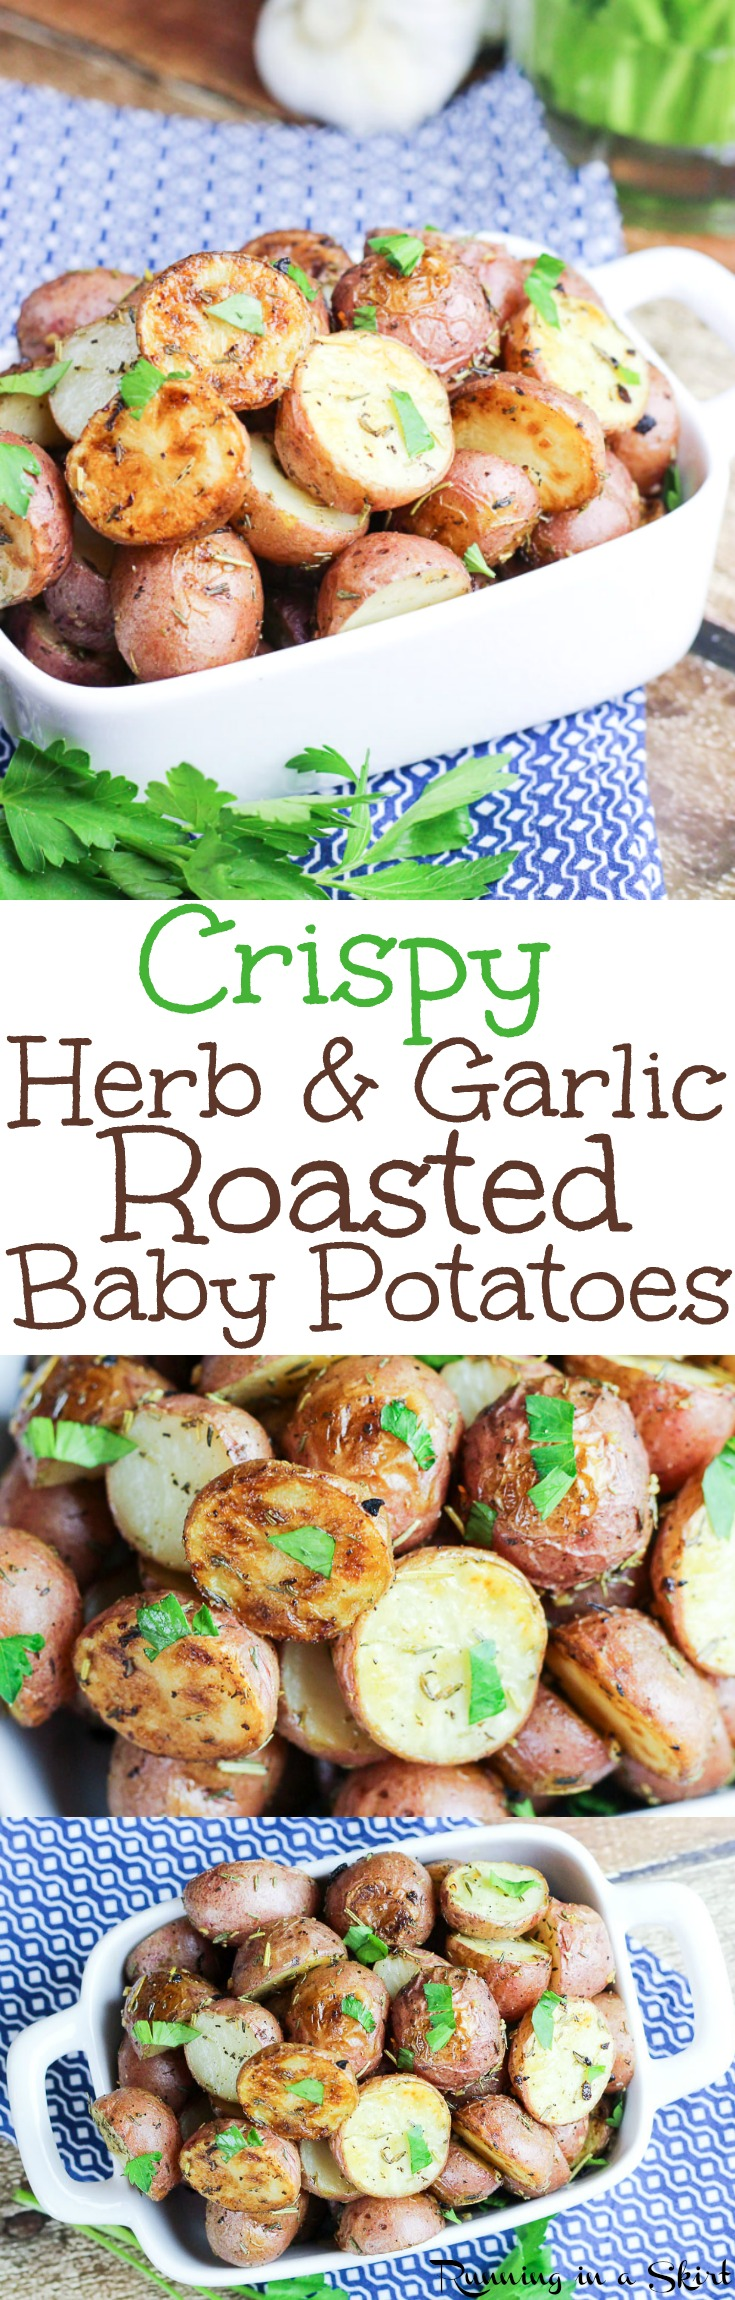 Crispy Oven Roasted Potatoes recipe - an easy and healthy recipe for baby red potatoes tossed in olive oil, garlic and herbs (rosemary and thyme.)  Great for dinner or for a crowd!  Roasted at 450!  Vegan, Vegetarian / Running in a Skirt via @juliewunder